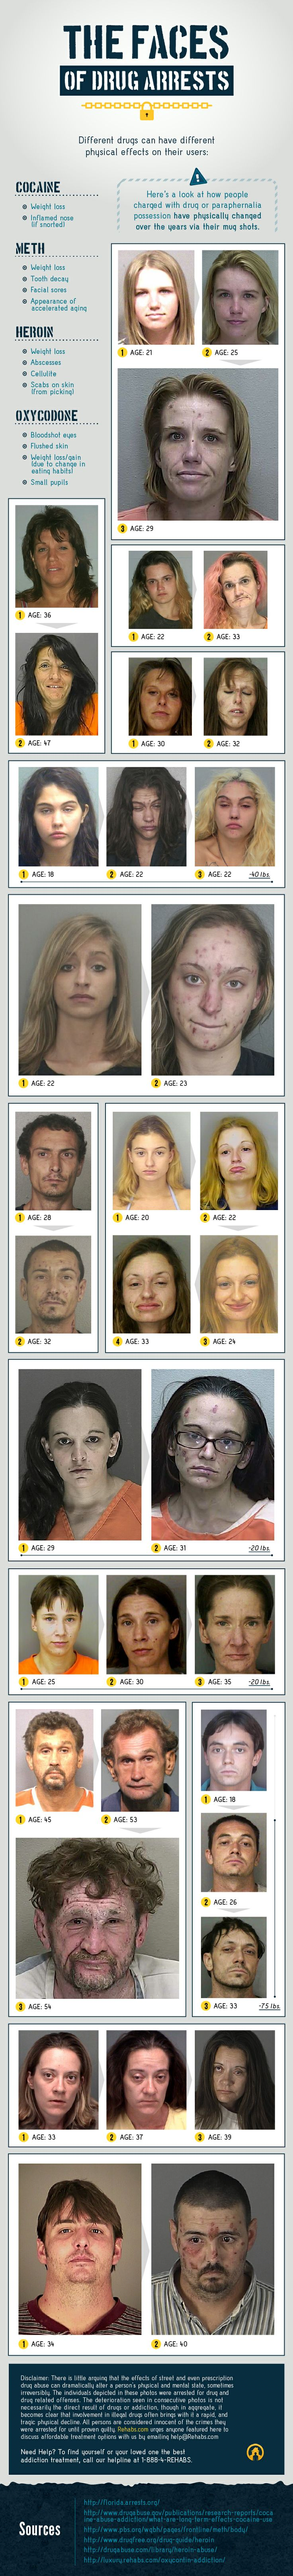 These Photos Show How #Heroin, #Cocaine and #Oxycodone Change Your Appearance Over Time